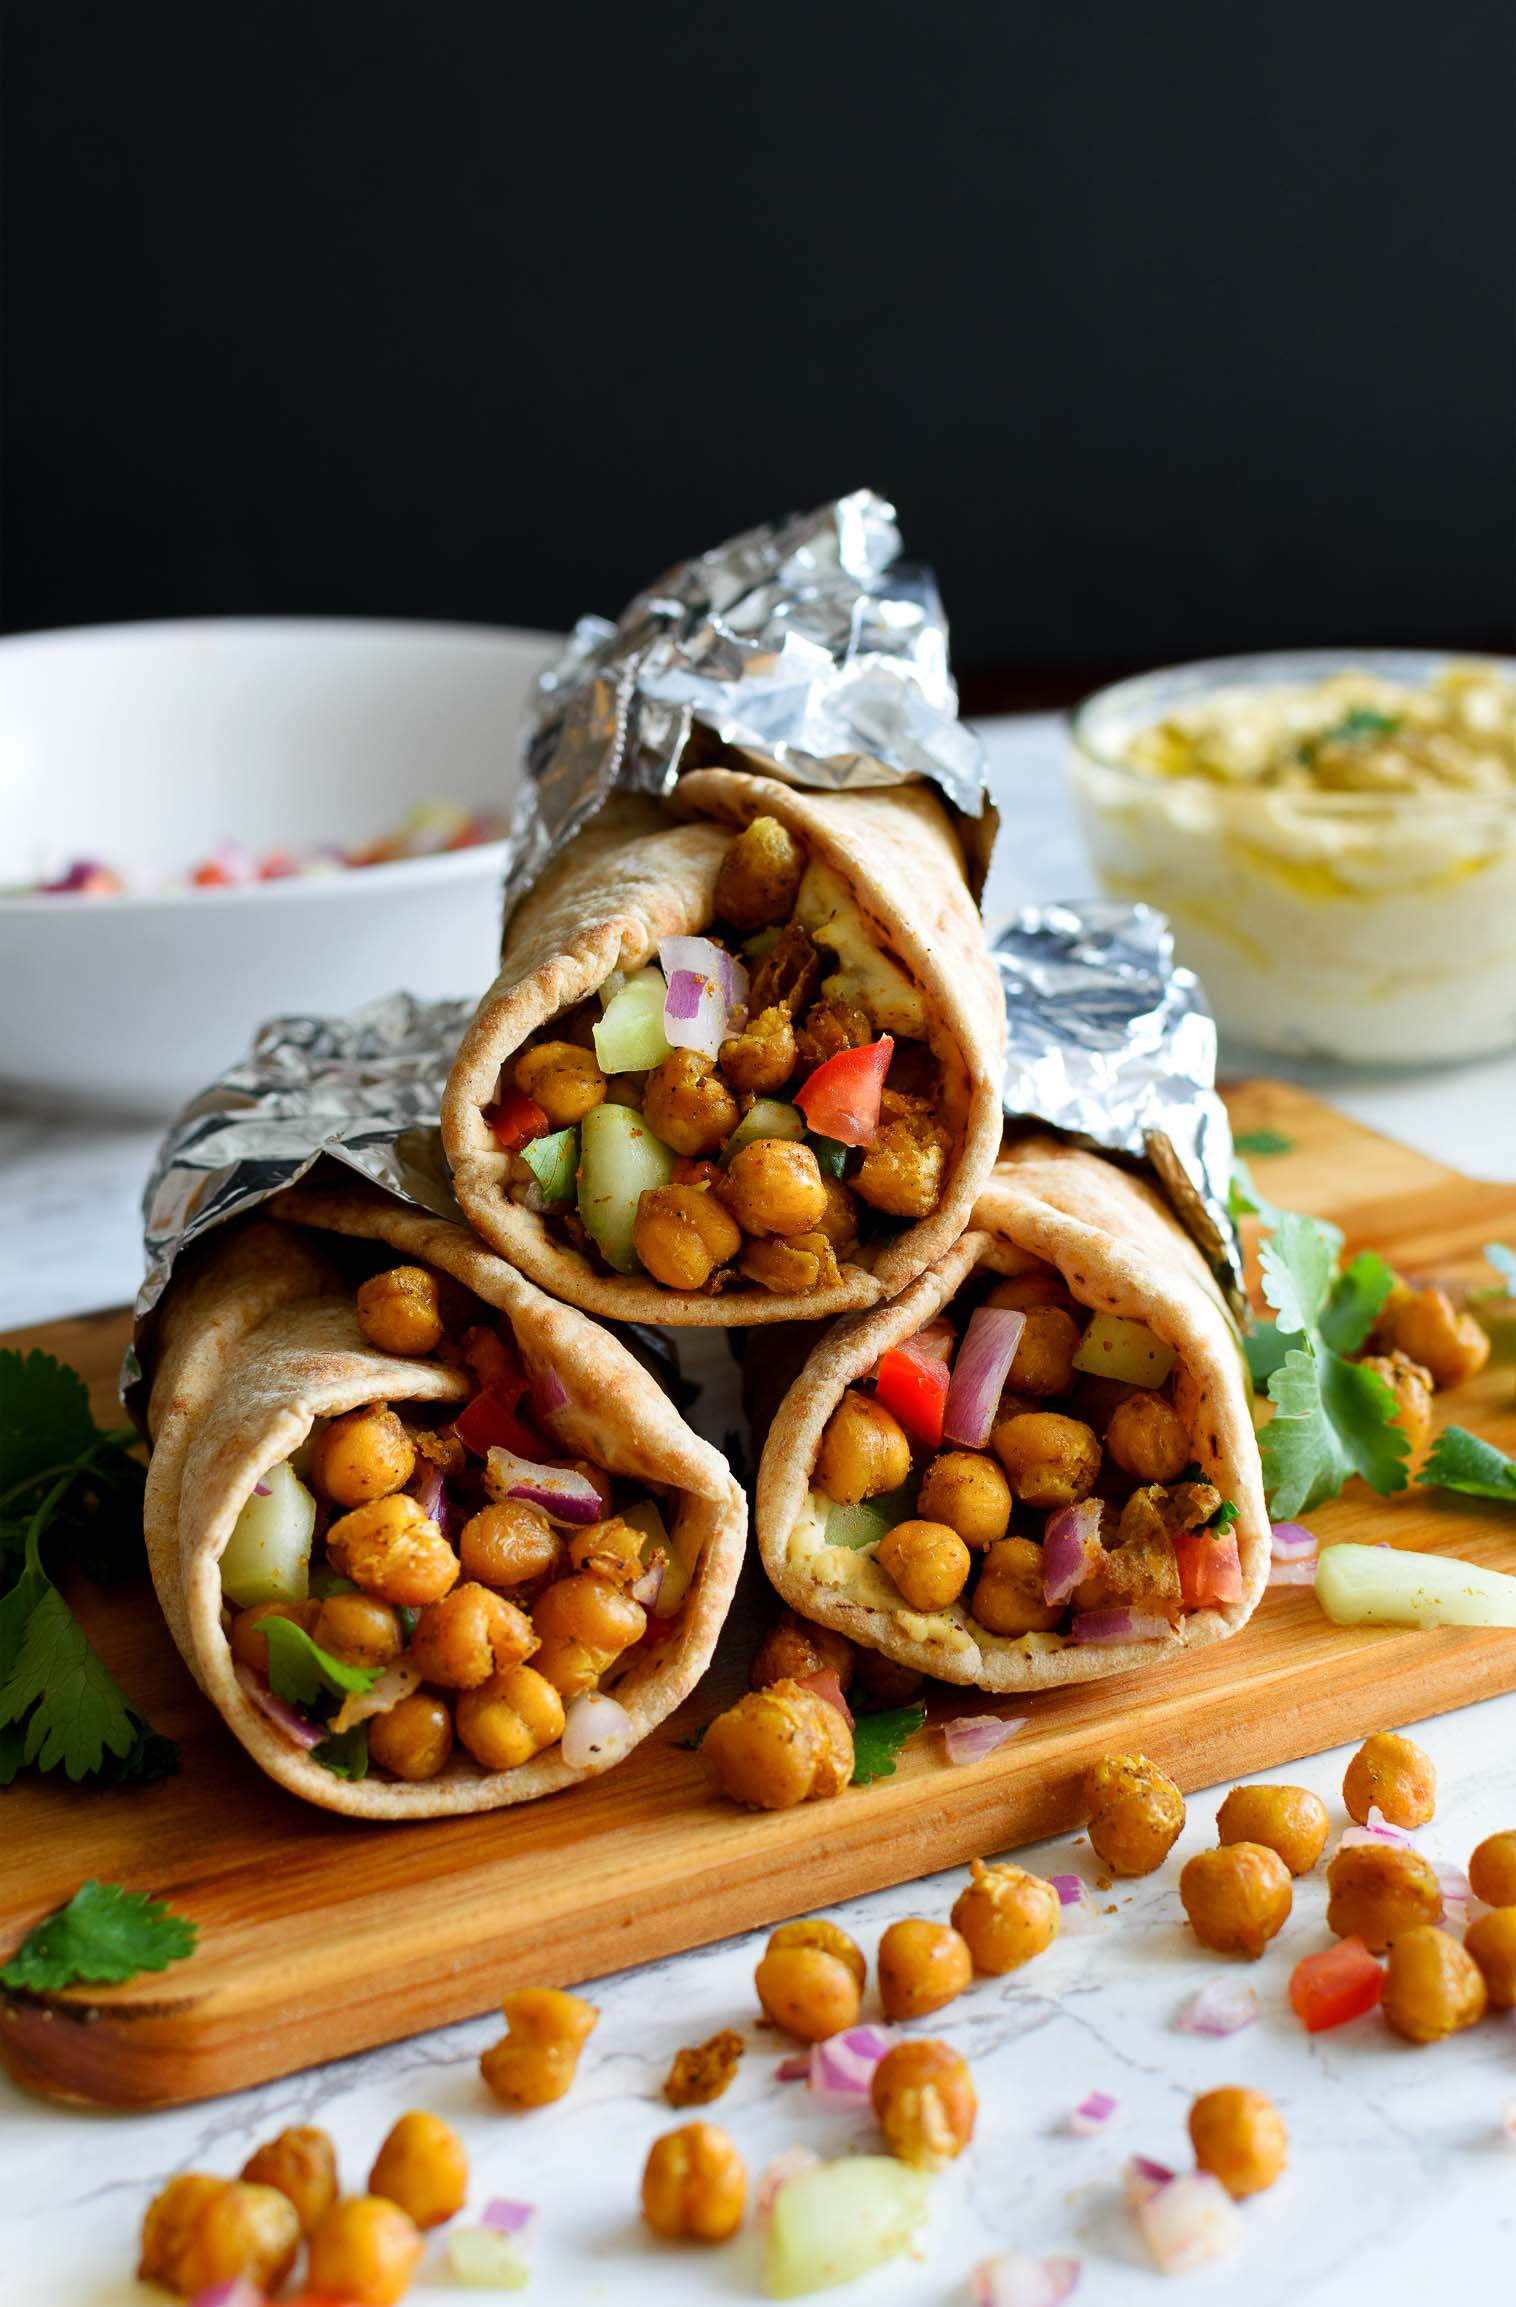 Roasted chickpeas hummus wrap pepper delight roasted chickpeas hummus wrap pepper delight pepperdelightblog wrap roll vegetarianwrap forumfinder Gallery